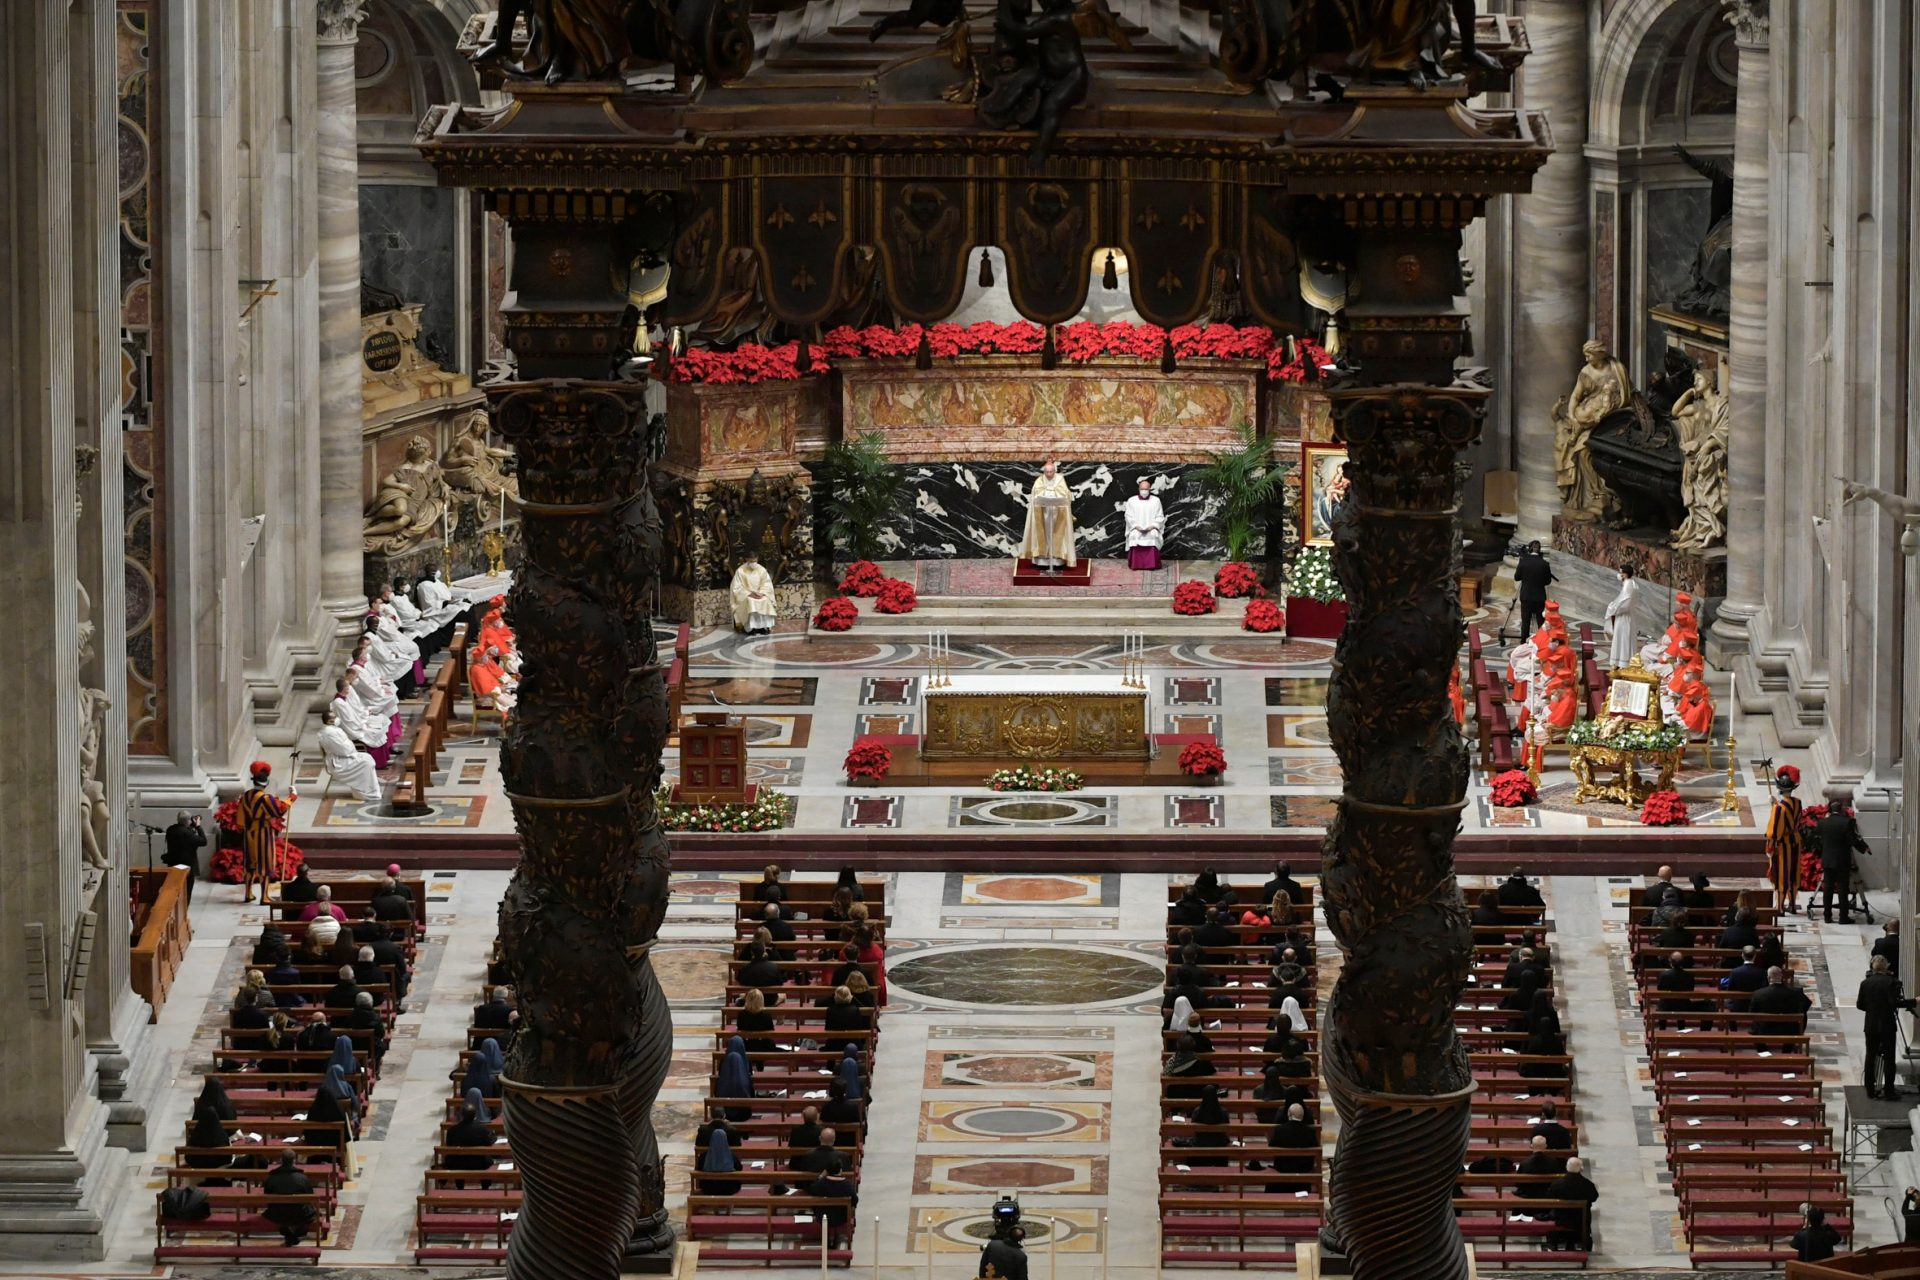 Cardinal Giovanni Battista Re leads the Vespers and Te Deum prayer in place of Pope Francis